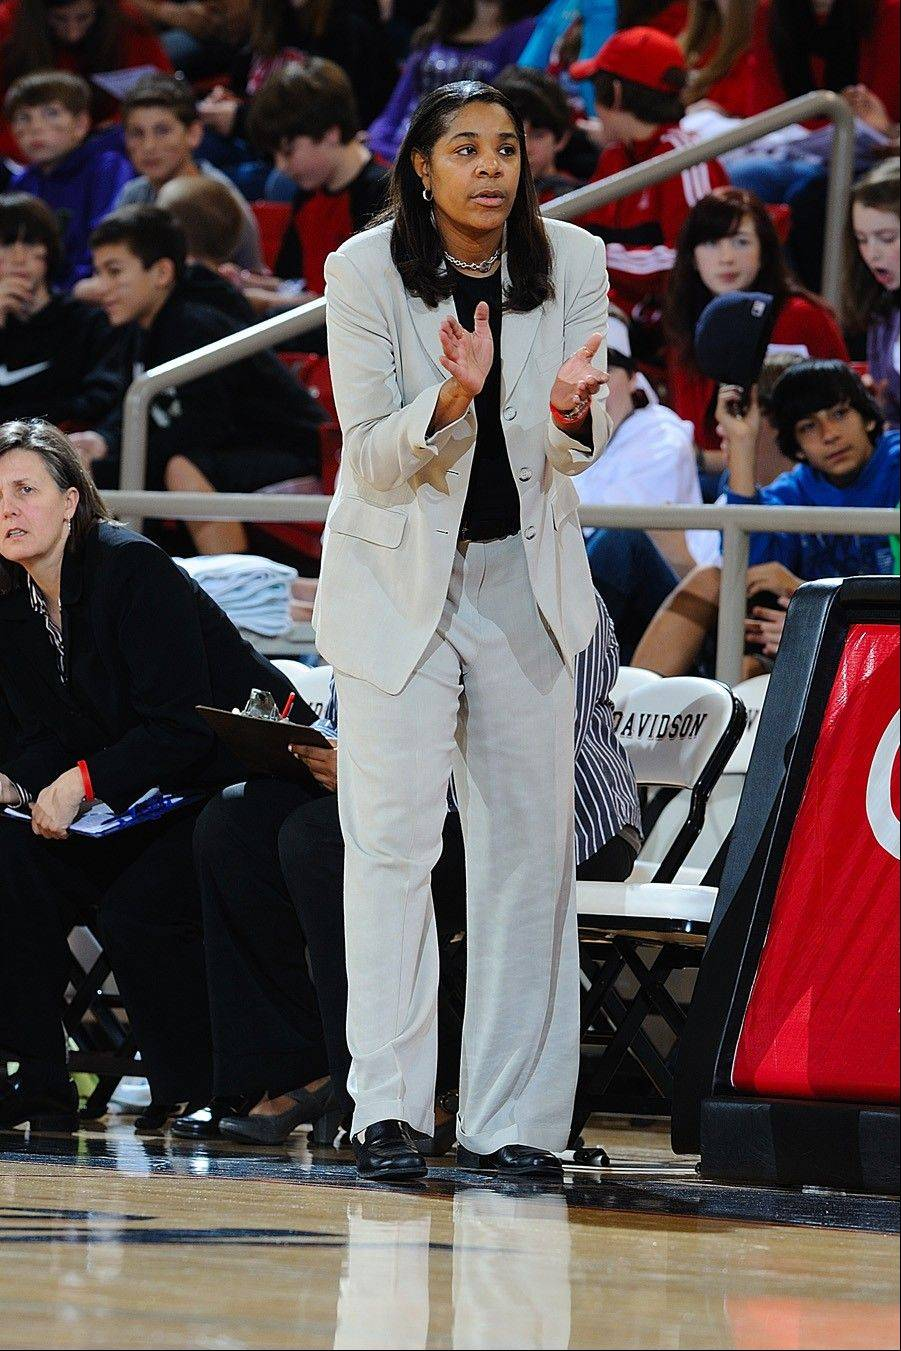 Davidson head coach Michele Savage, a former player at Northwestern, led her women's basketball team to 22 wins this season.